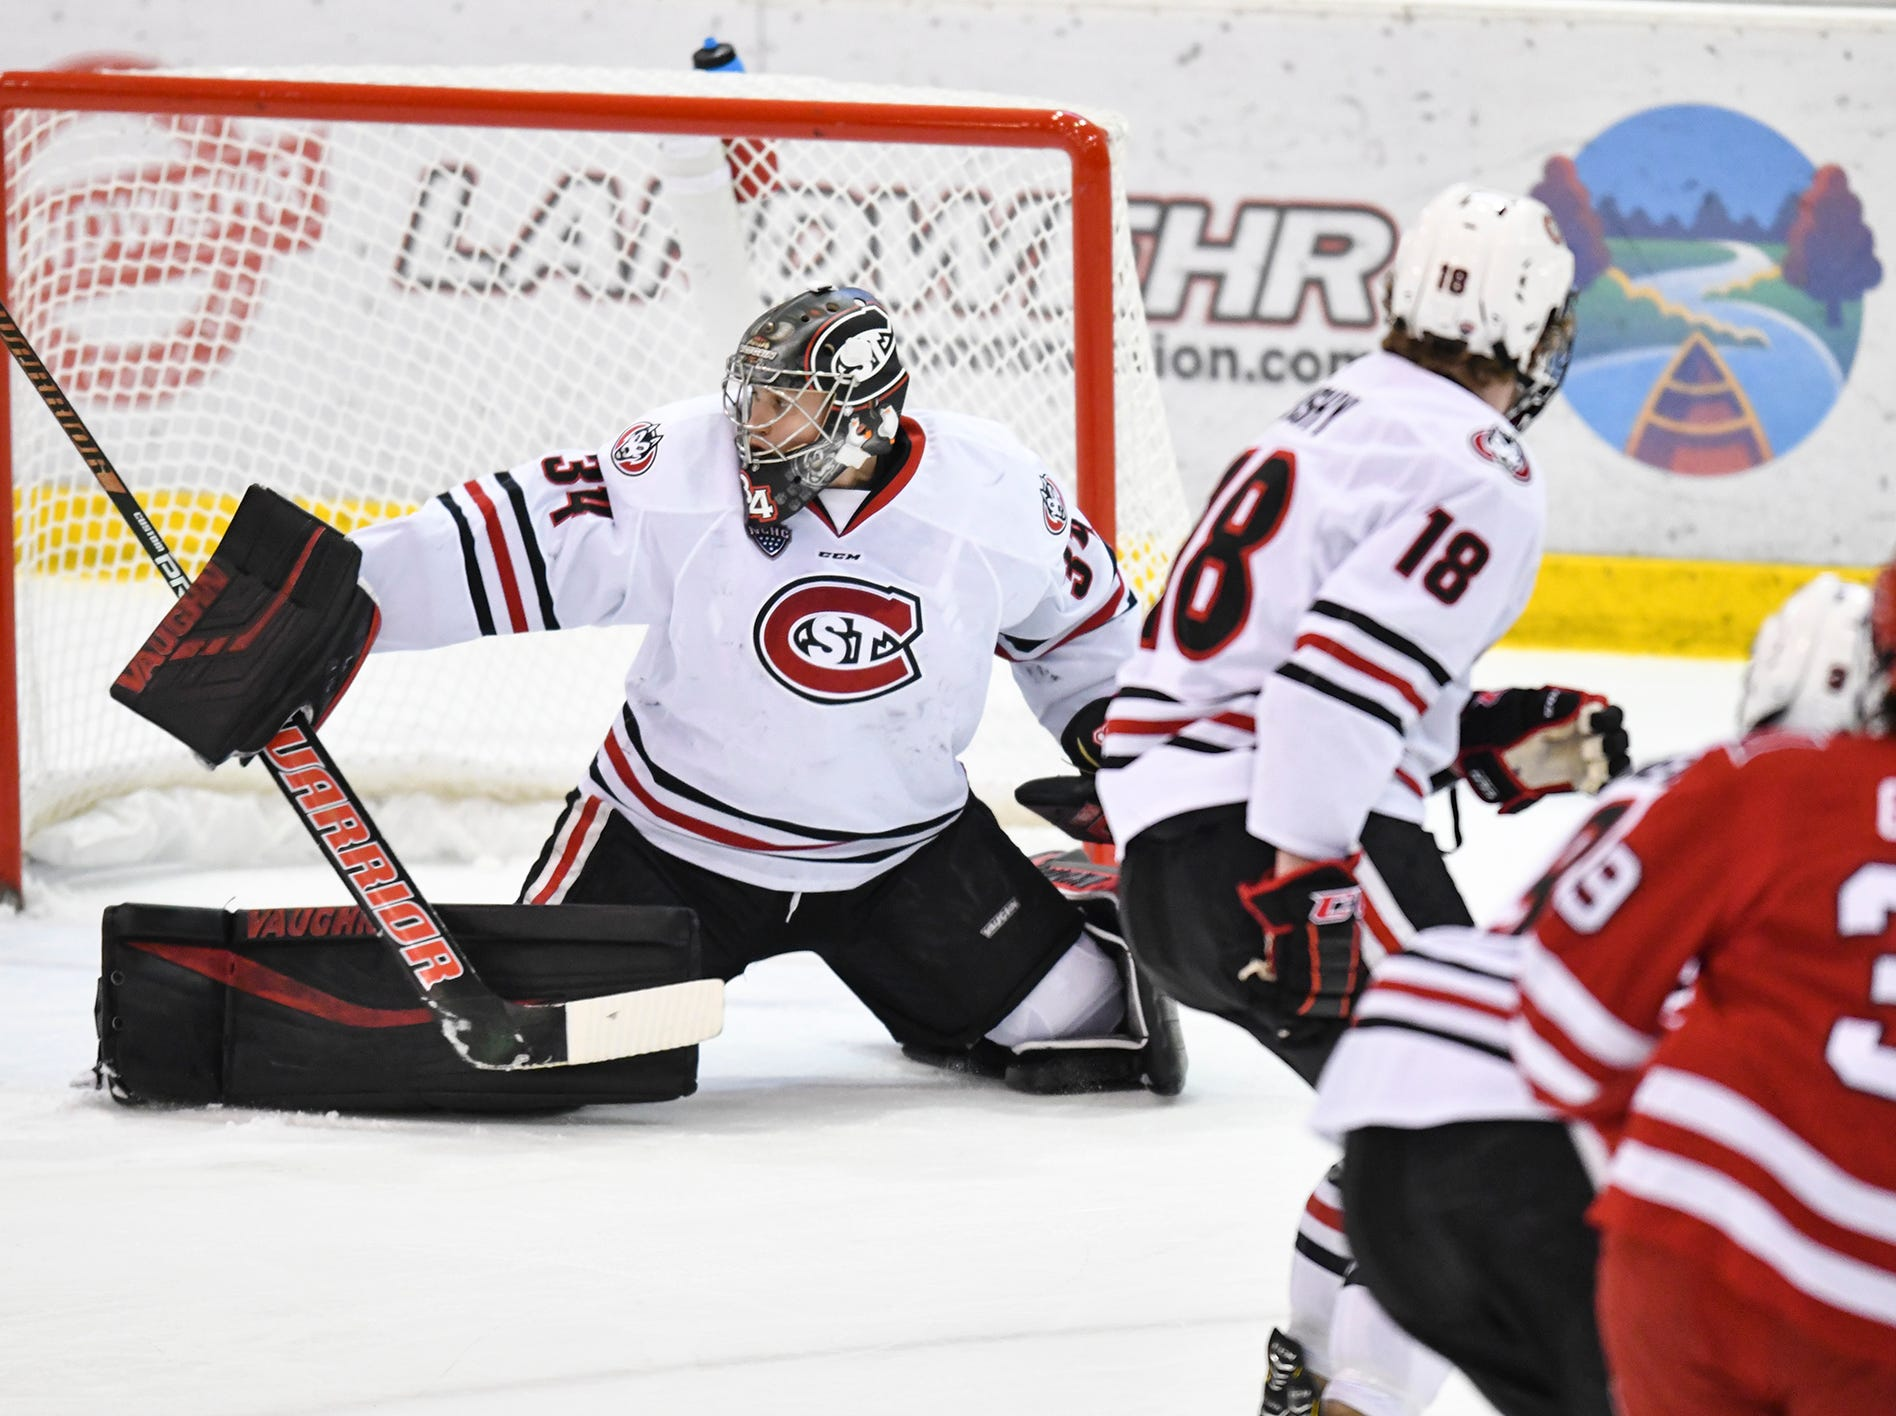 St. Cloud State goaltender David Hrenak makes a save during the first period of the Saturday, March 16 game at the Herb Brooks National Hockey Center in St. Cloud.